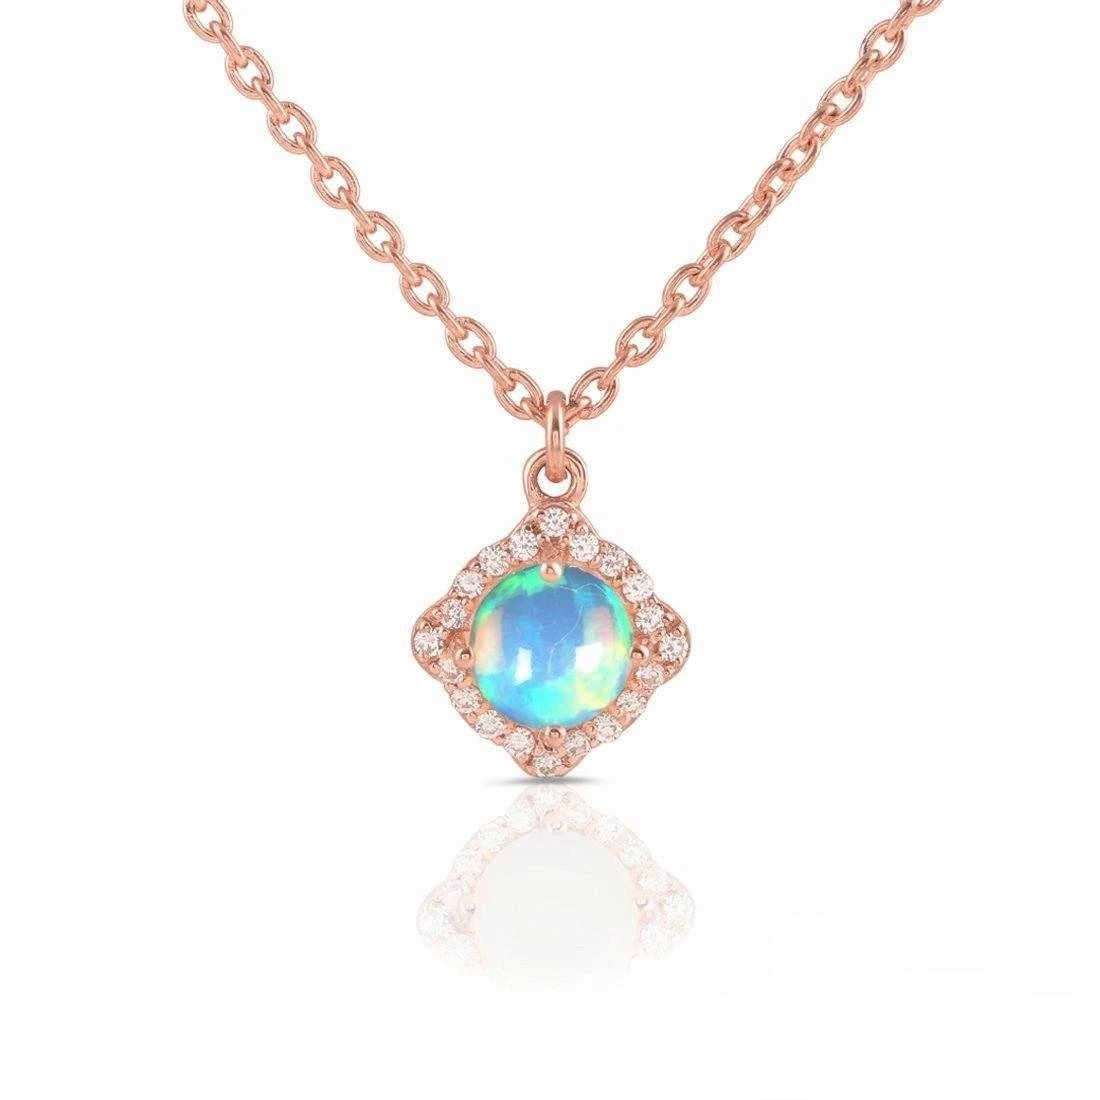 14K Rose Gold Necklace With Opal Stone